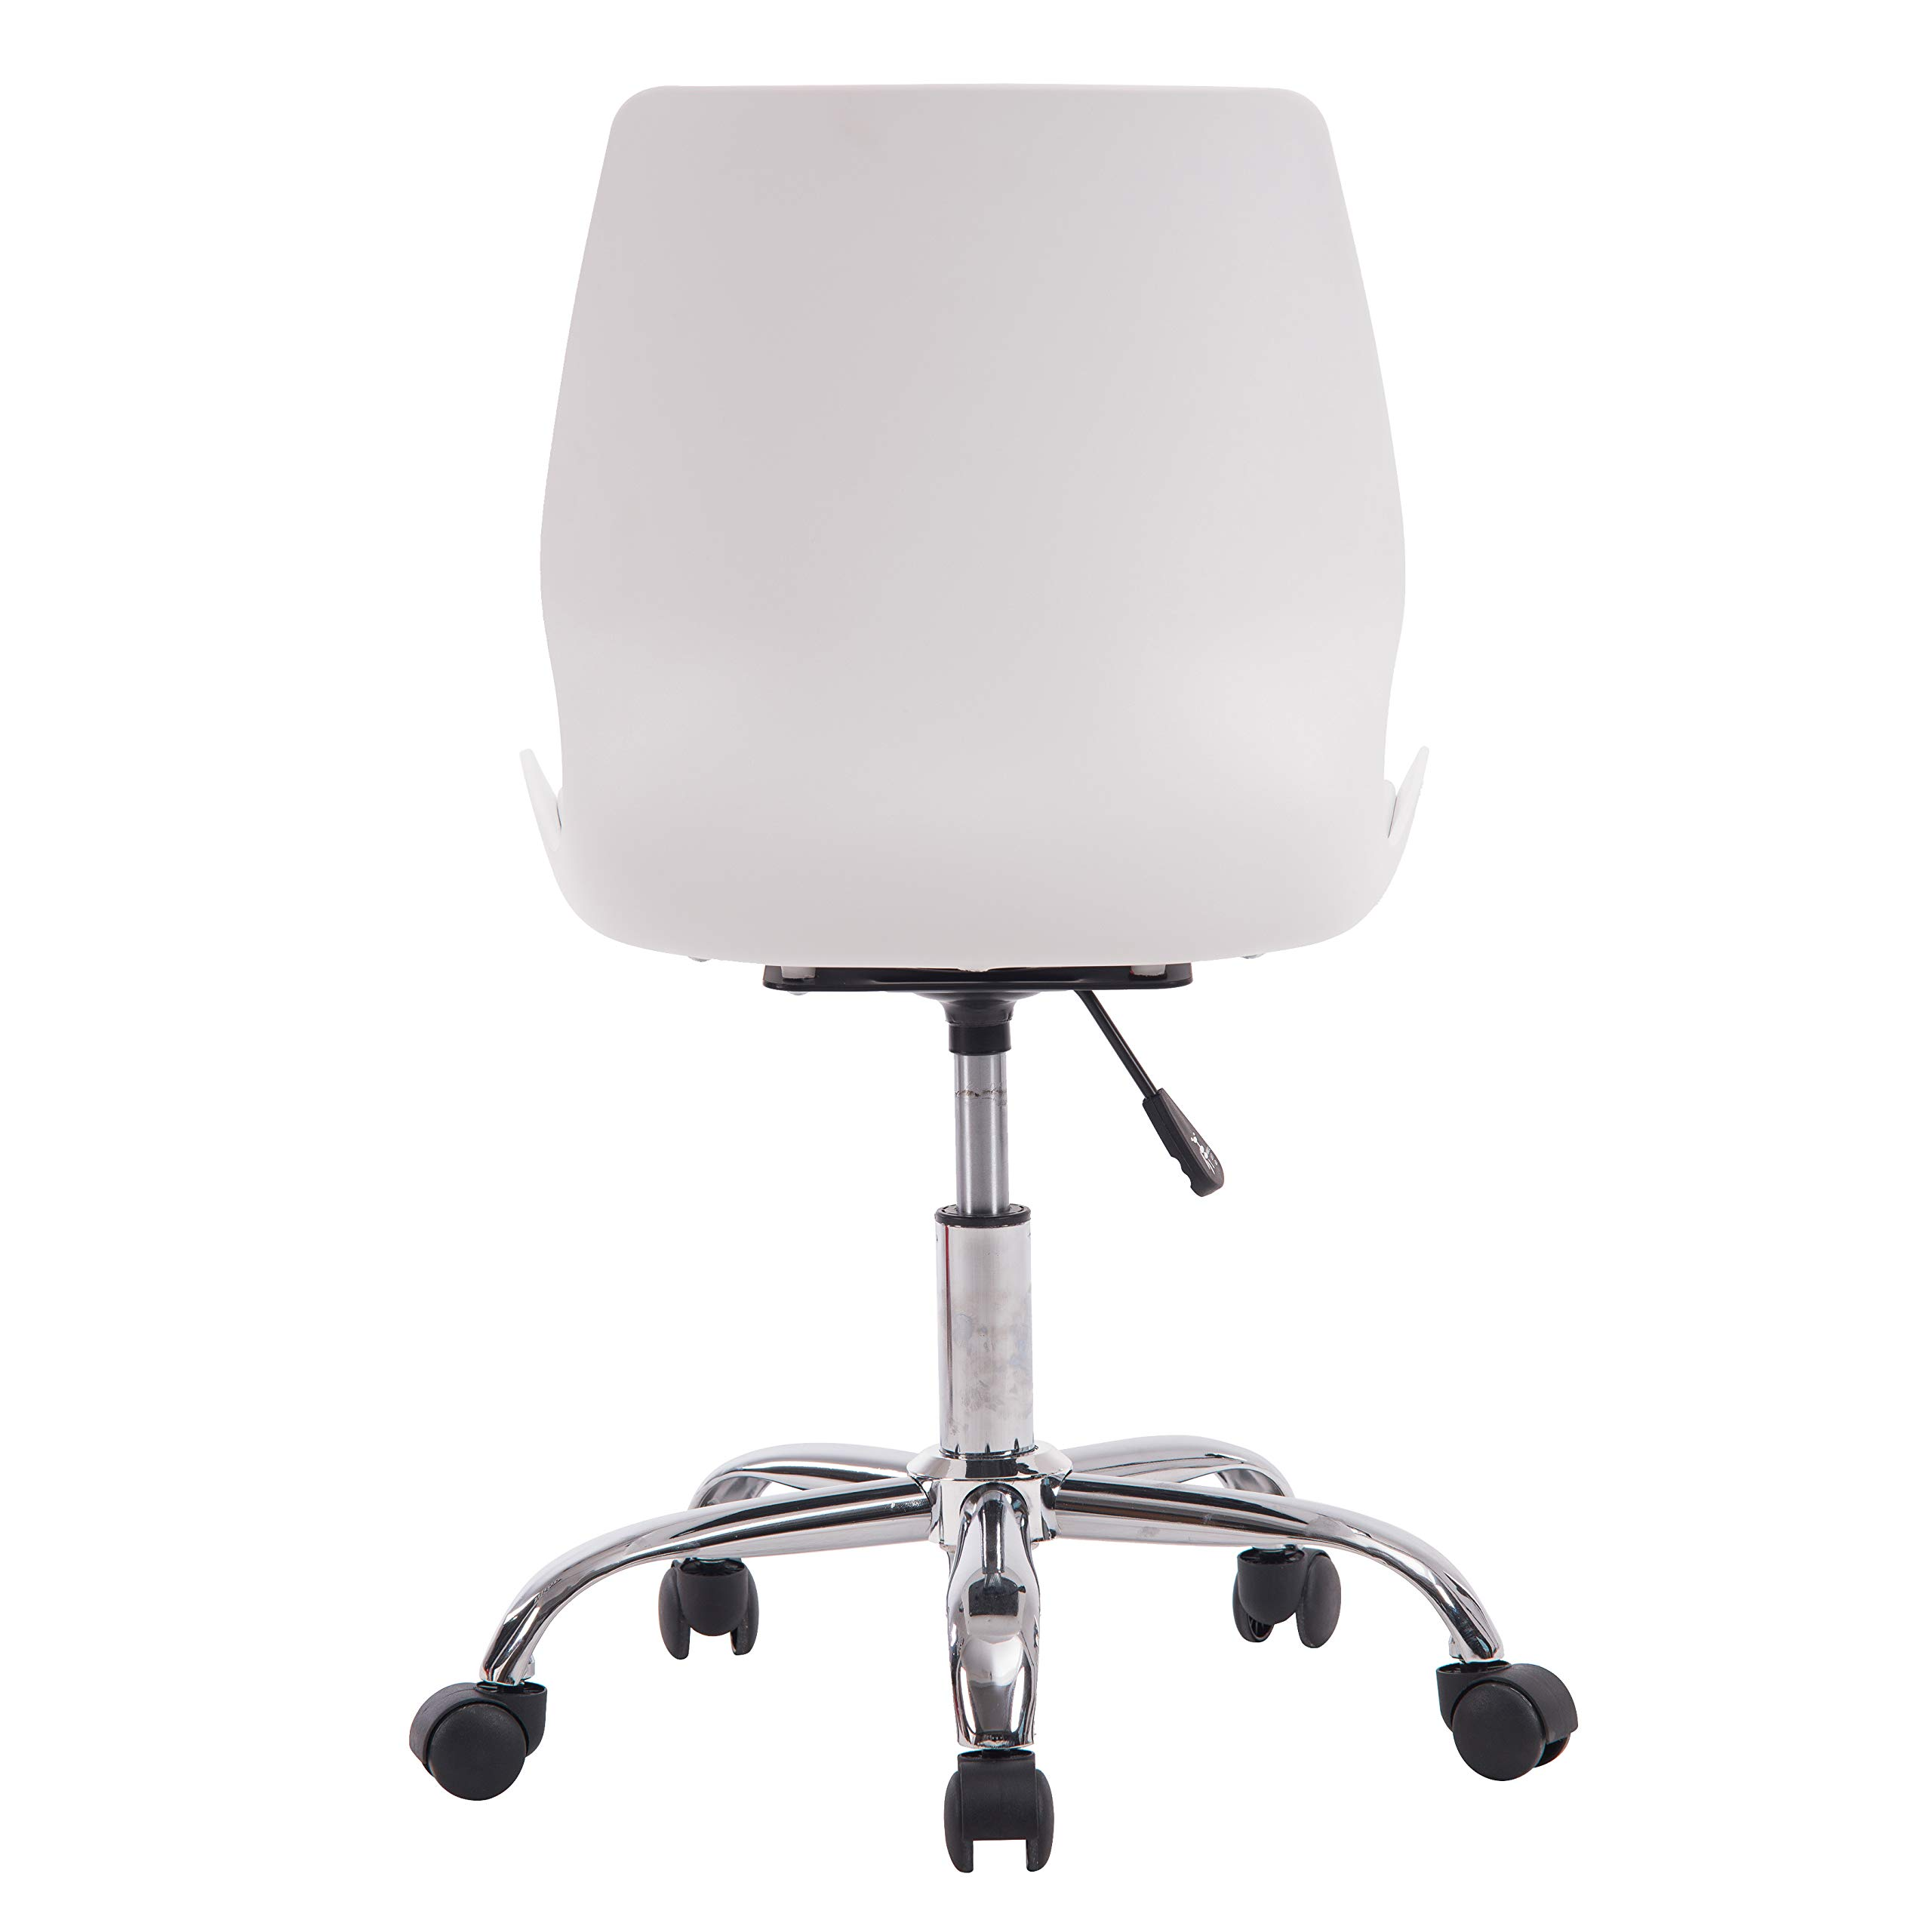 Porthos Home LVC006A WHT Adjustable Height Office Desk Chair with Wheels, Easy Assembly, White or Black, One Size by Porthos Home (Image #4)